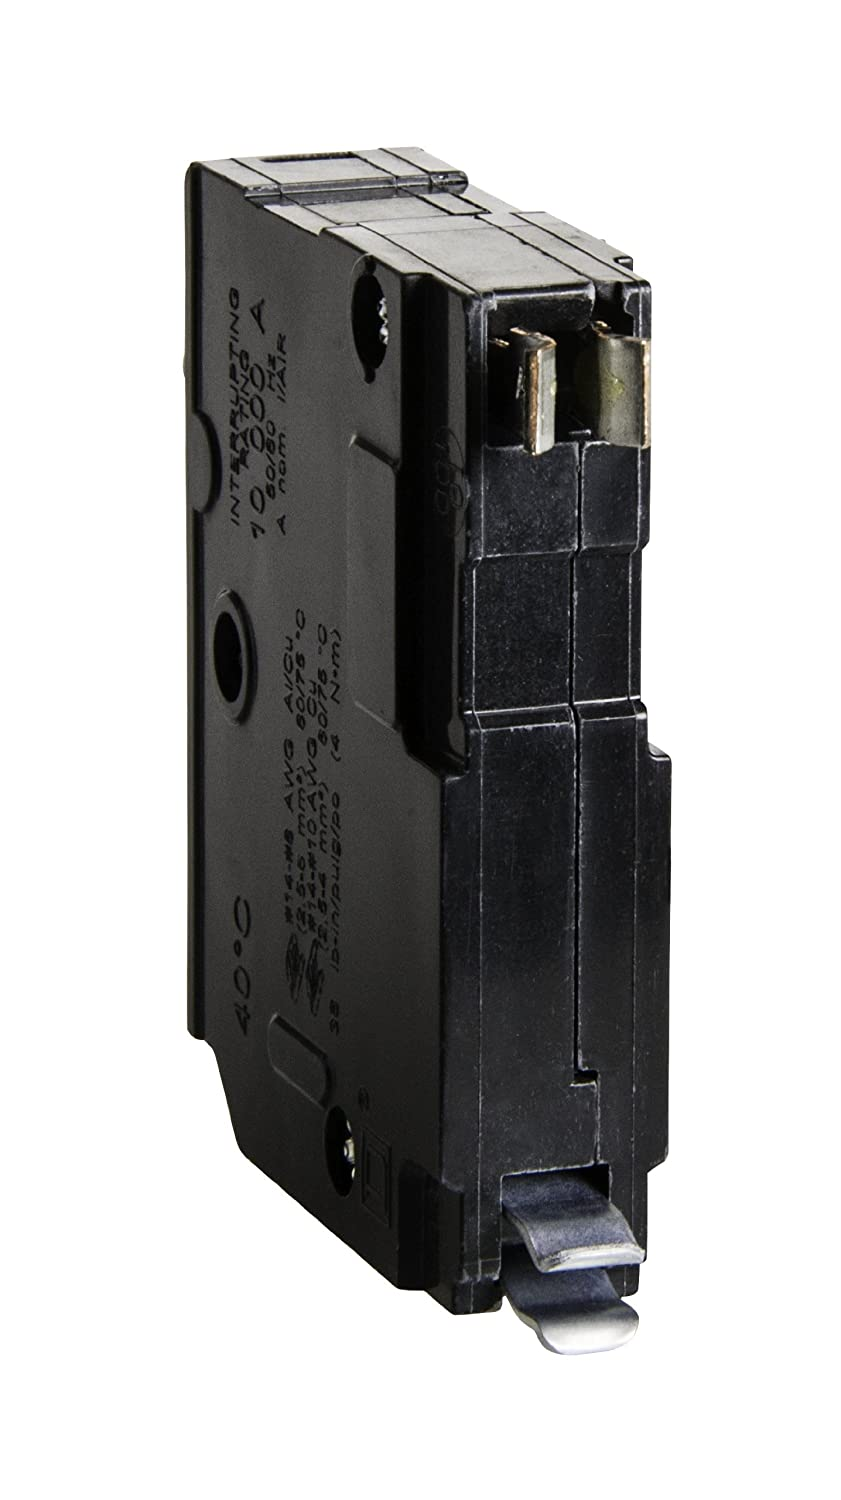 Square D by Schneider Electric QO125CP QO 25-Amp Single-Pole Circuit  Breaker - Thermal Magnetic Circuit Breakers - Amazon.com